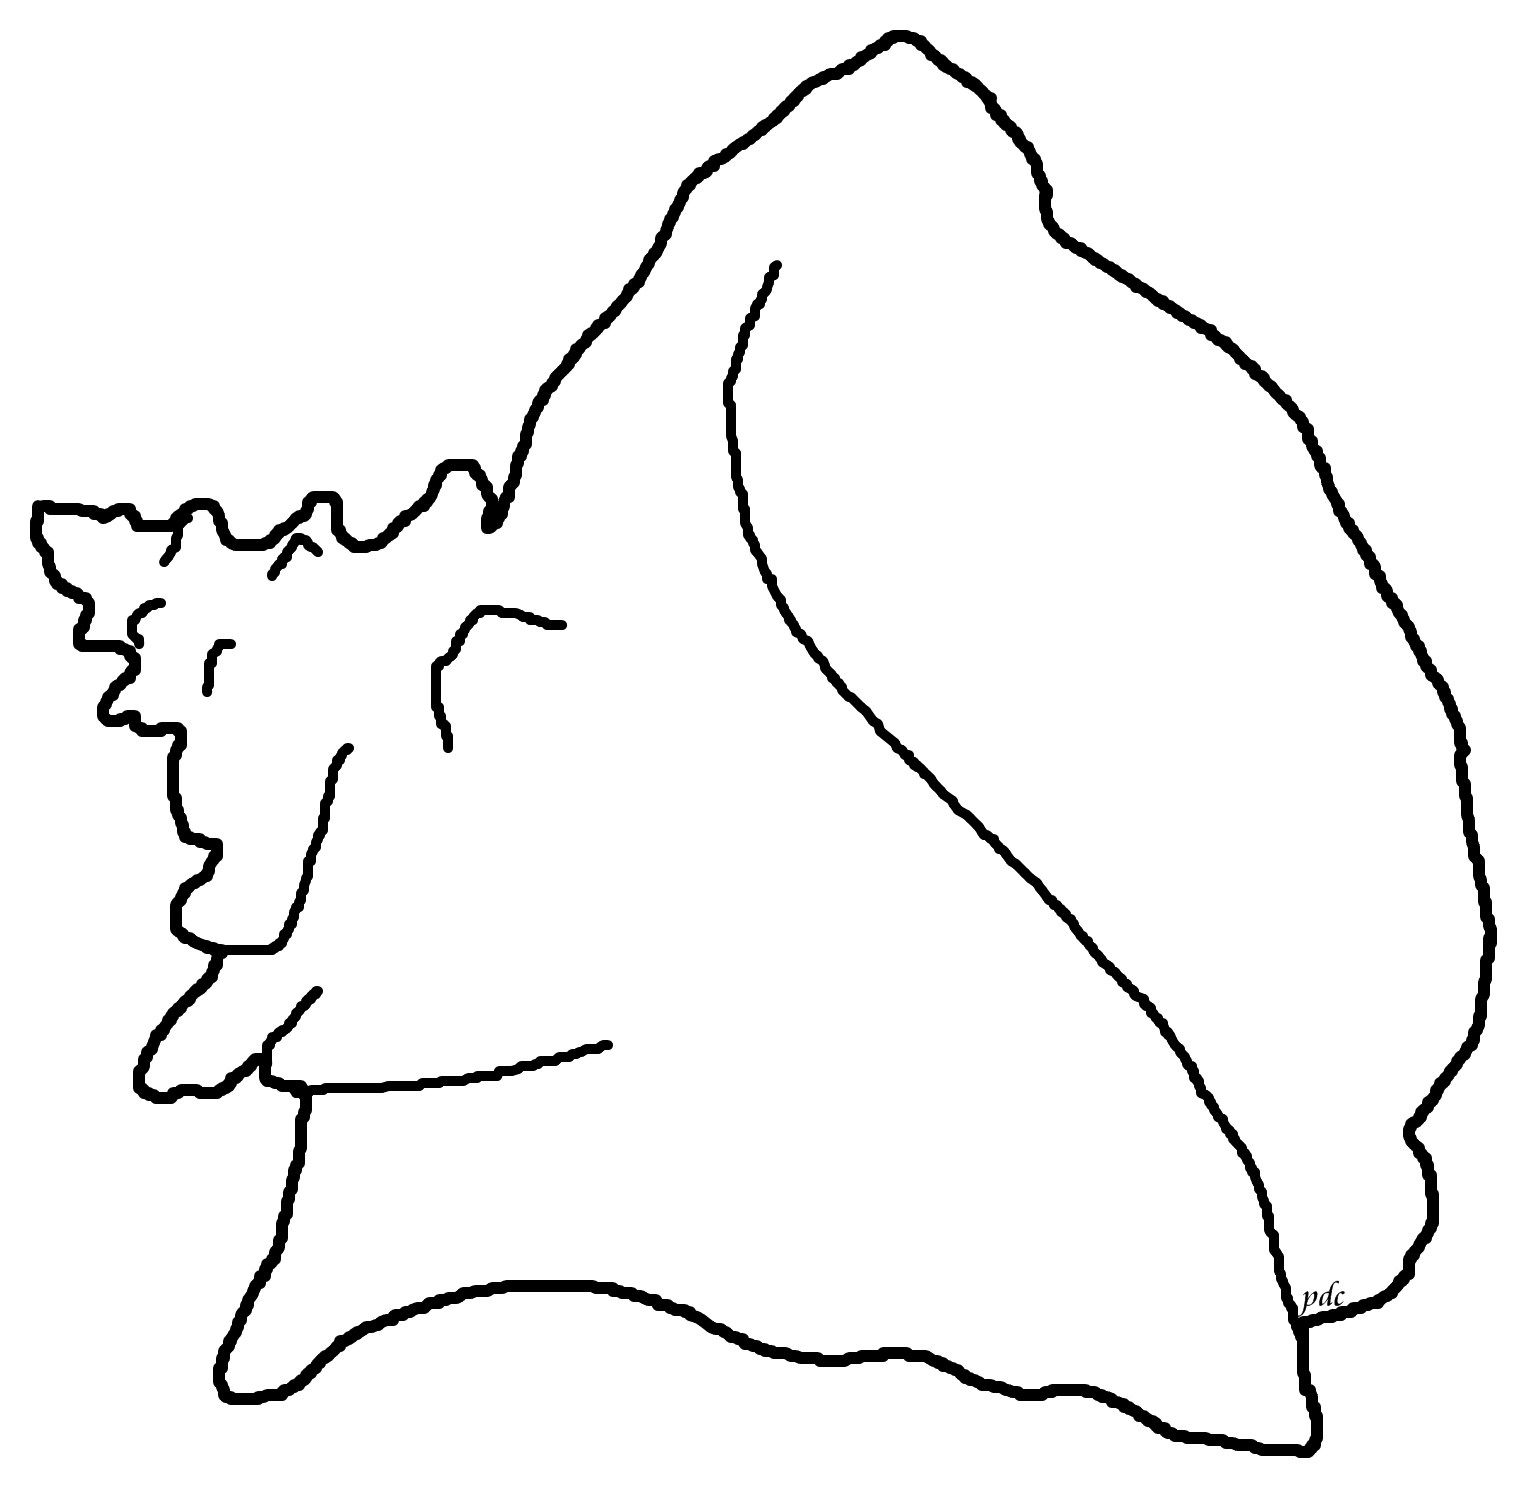 queen conch queen or pink conch shell - Coloring Page Queen